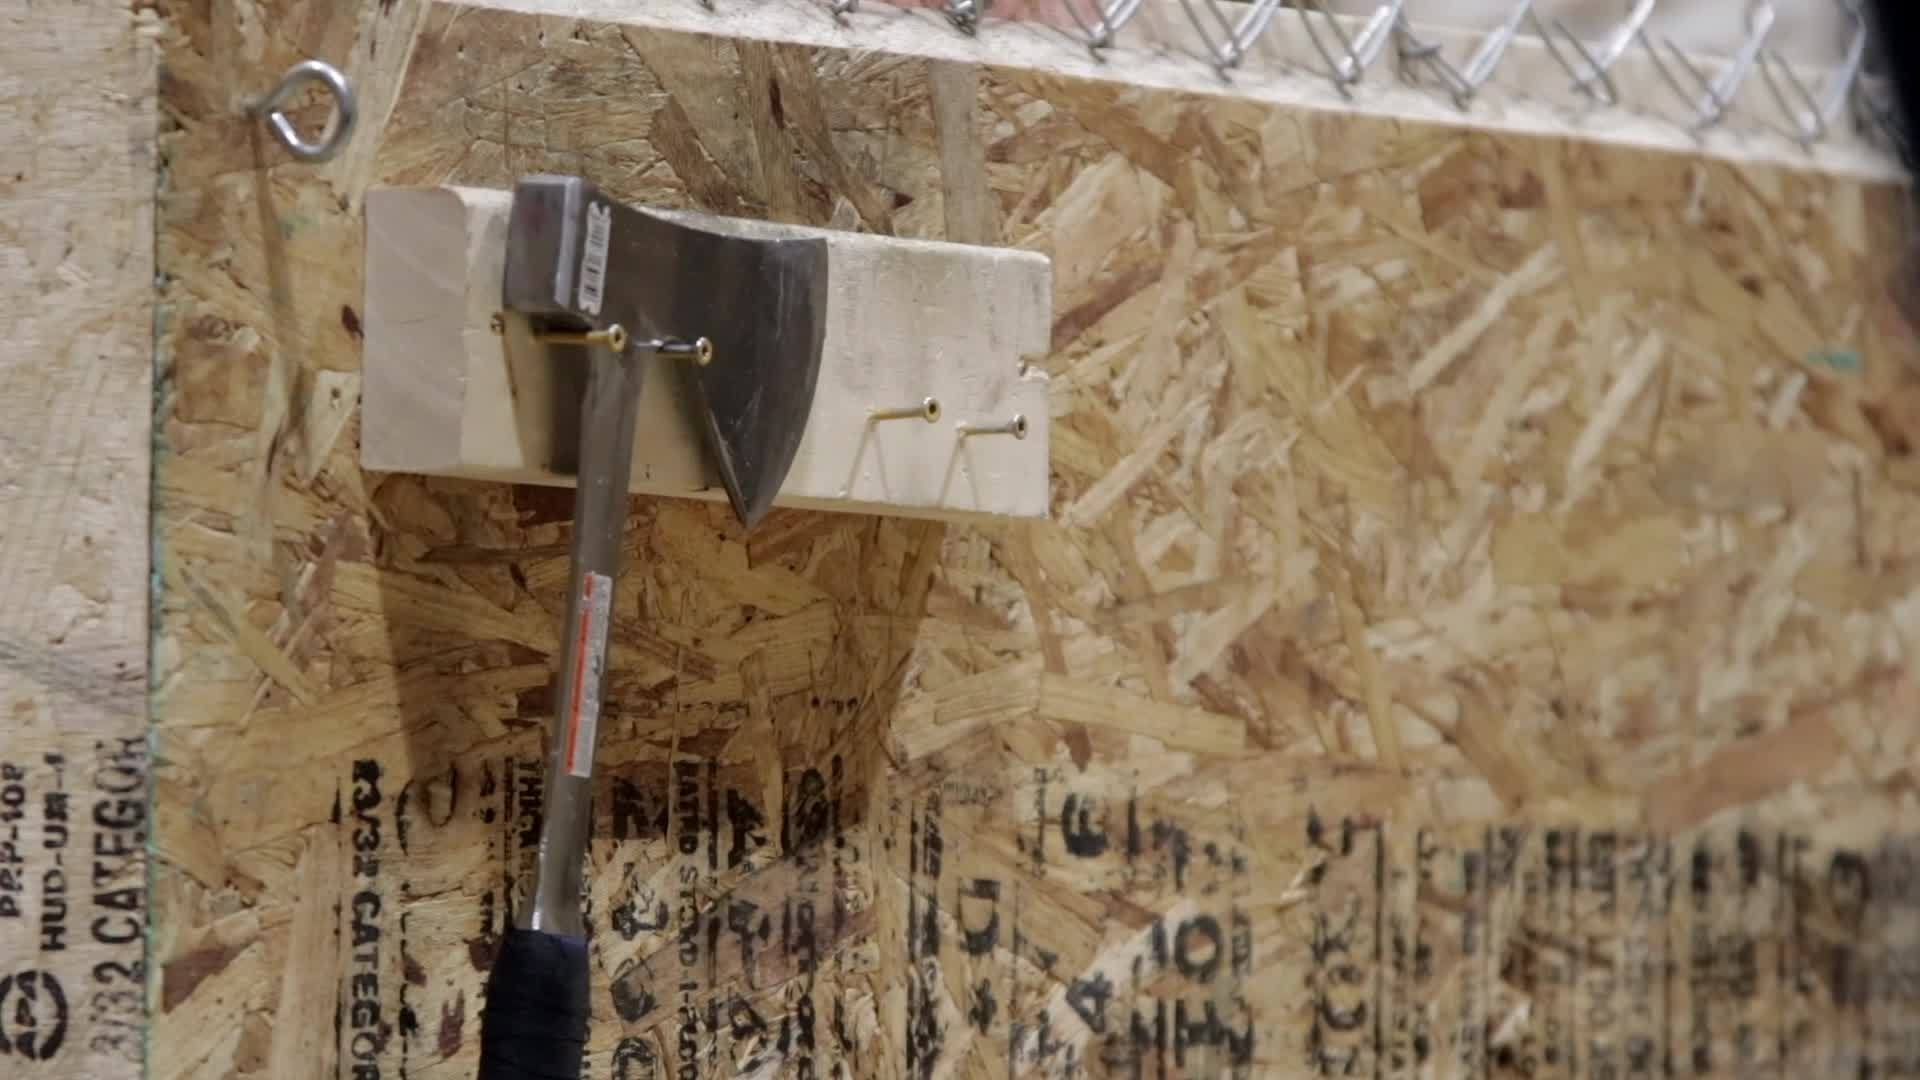 TREND ALERT: Axe throwing in Mobile by Fall 2019